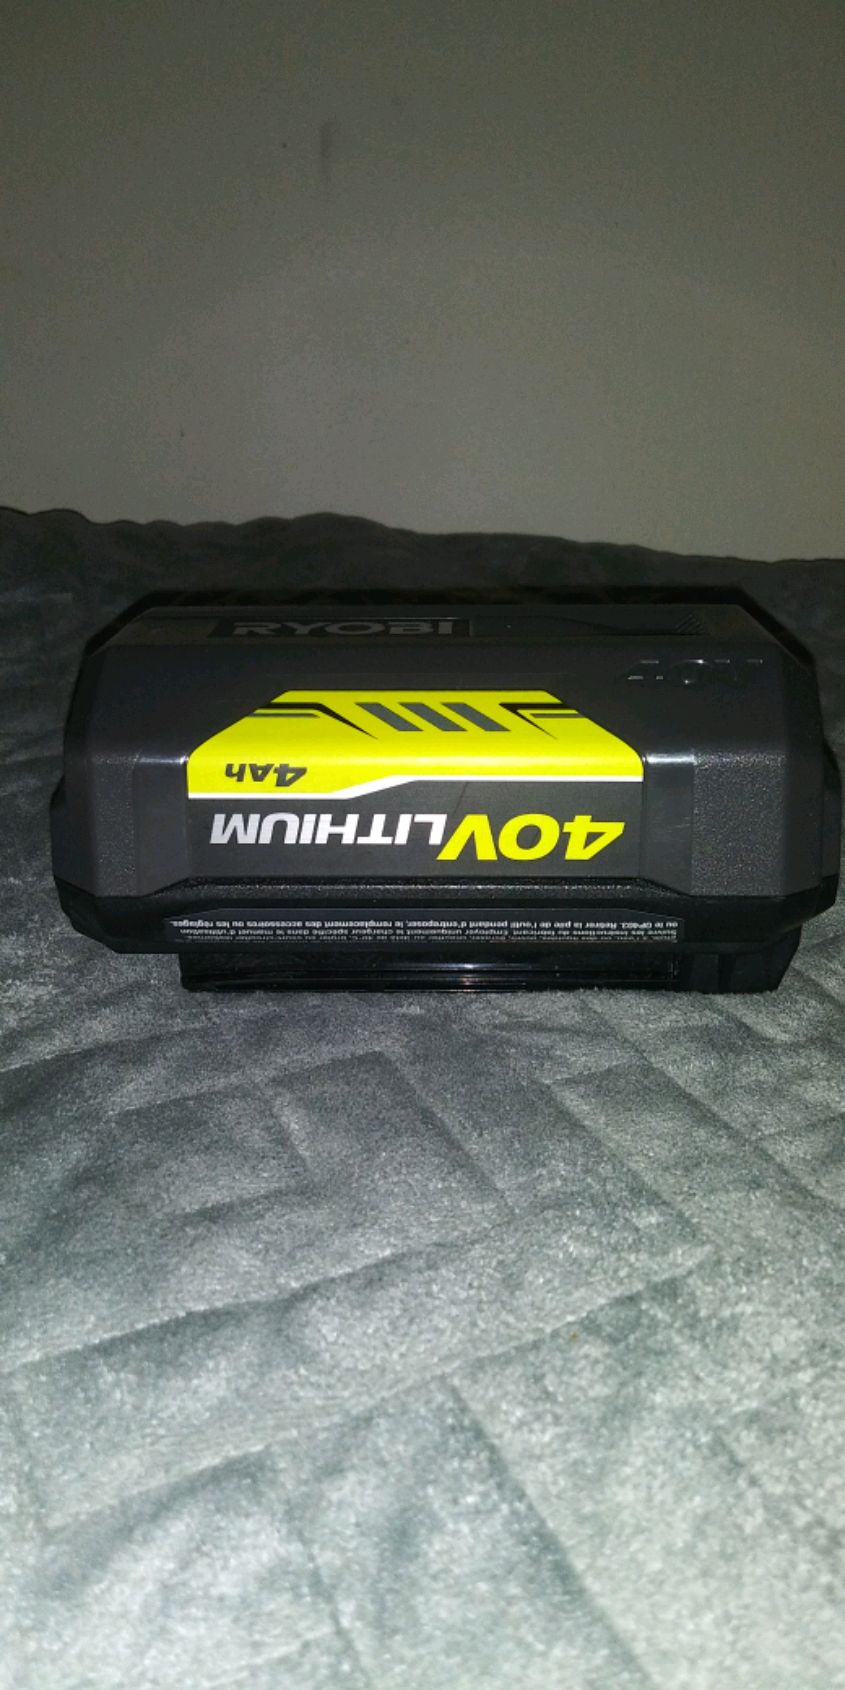 Photo Ryobi 40v 4ah replacement battery for all there outdoor stuff